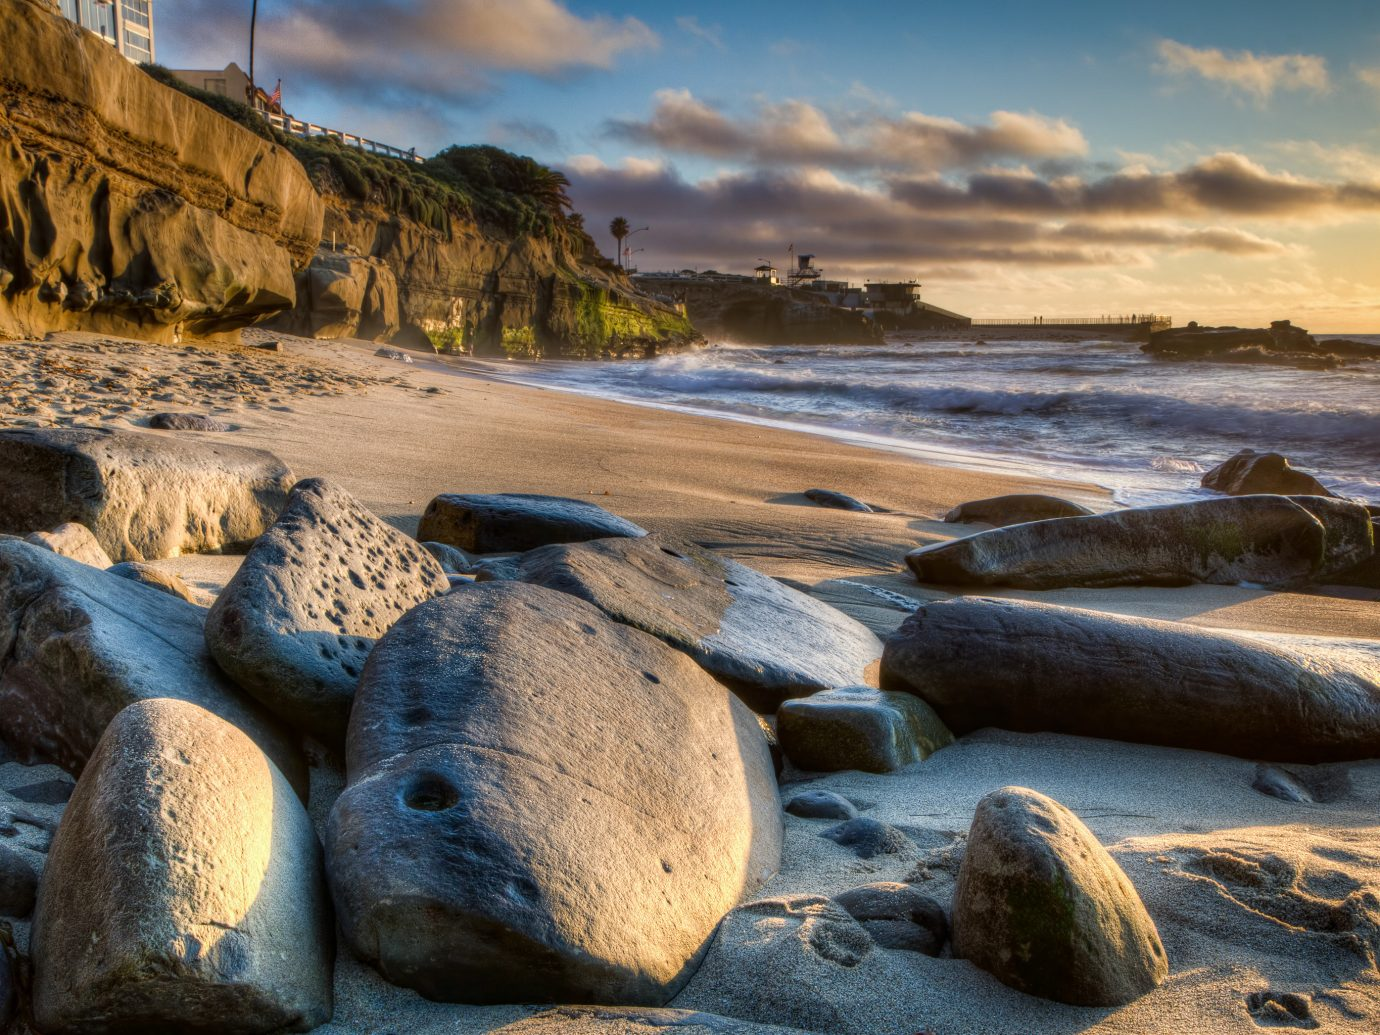 America Trip Ideas West Coast outdoor sky rock shore Coast Sea Nature Beach body of water Ocean water wave River morning sand landscape Sunset bay cove material